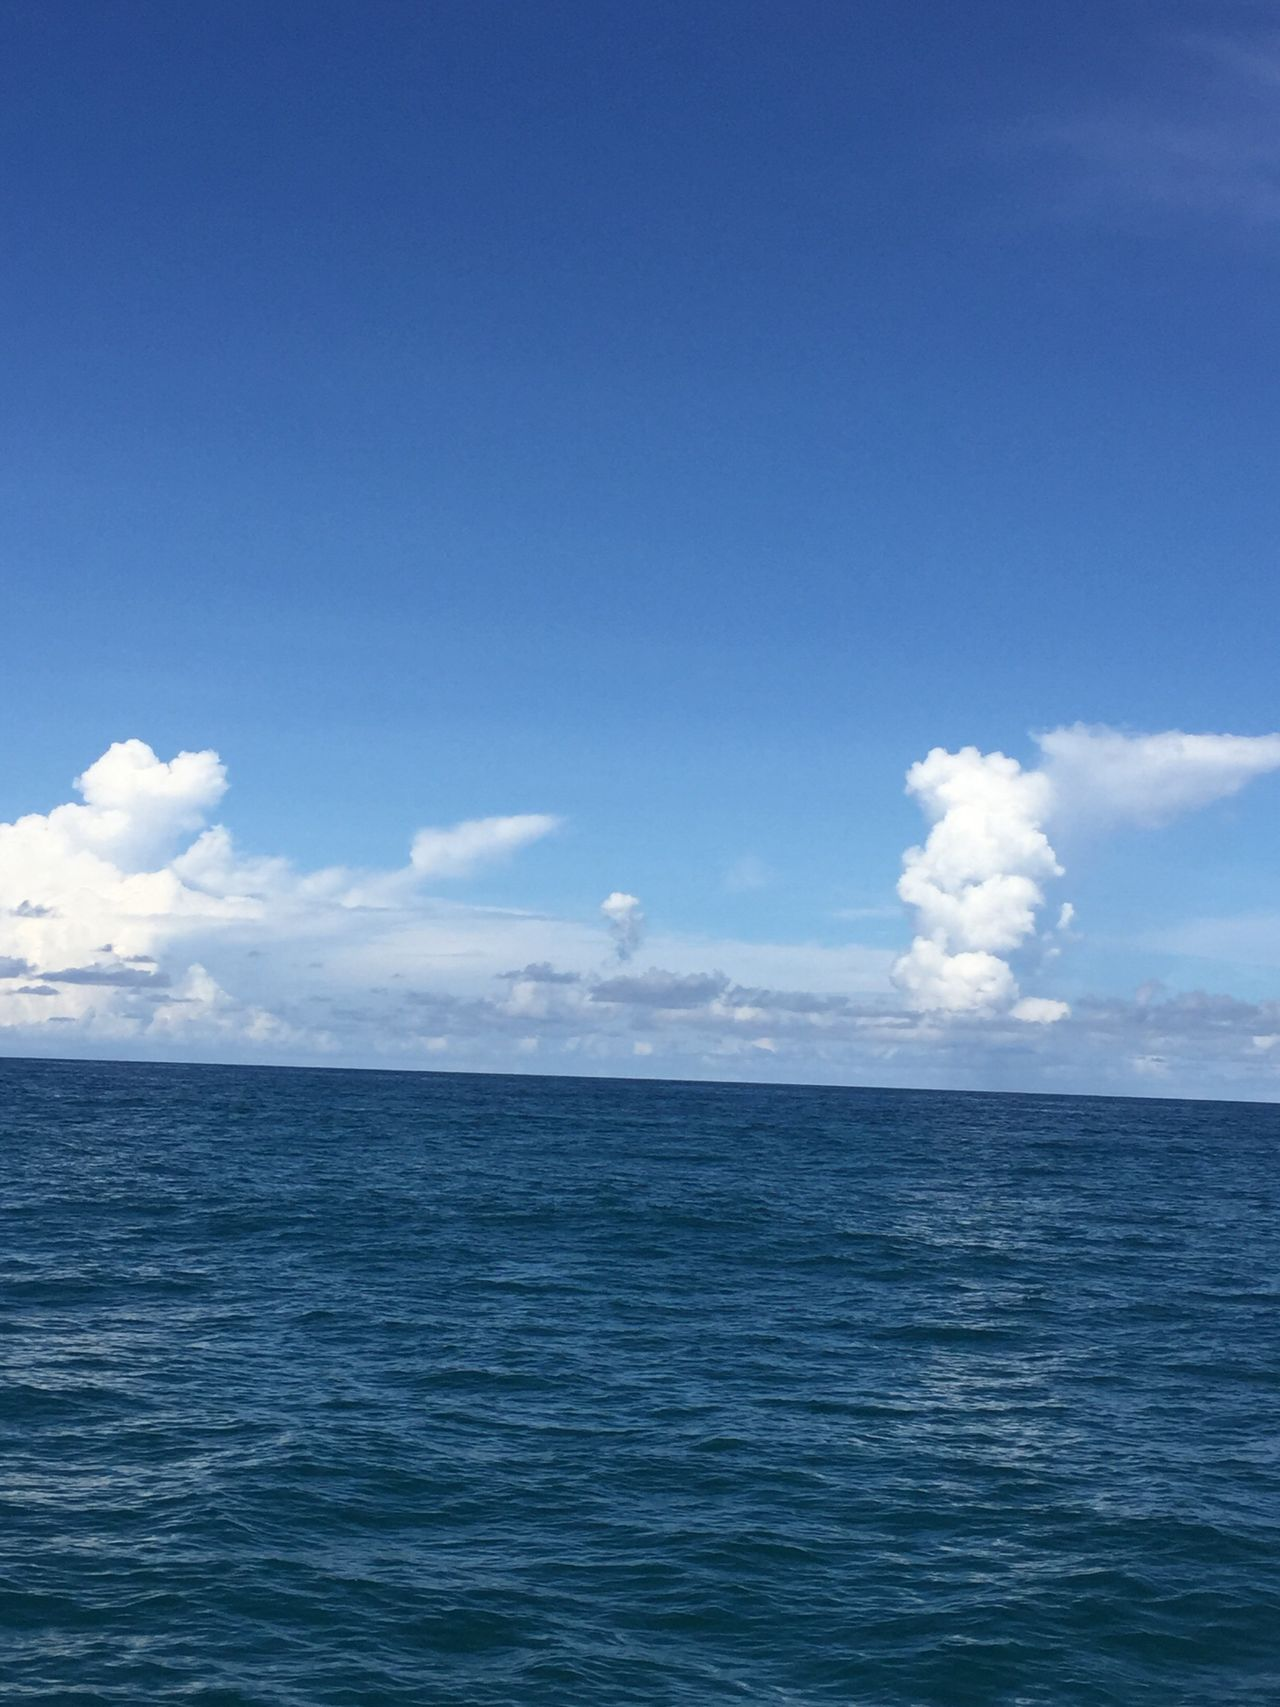 No People Sea Blue Water Sky Horizon Over Water Beauty In Nature Scenics Nature Cloud - Sky